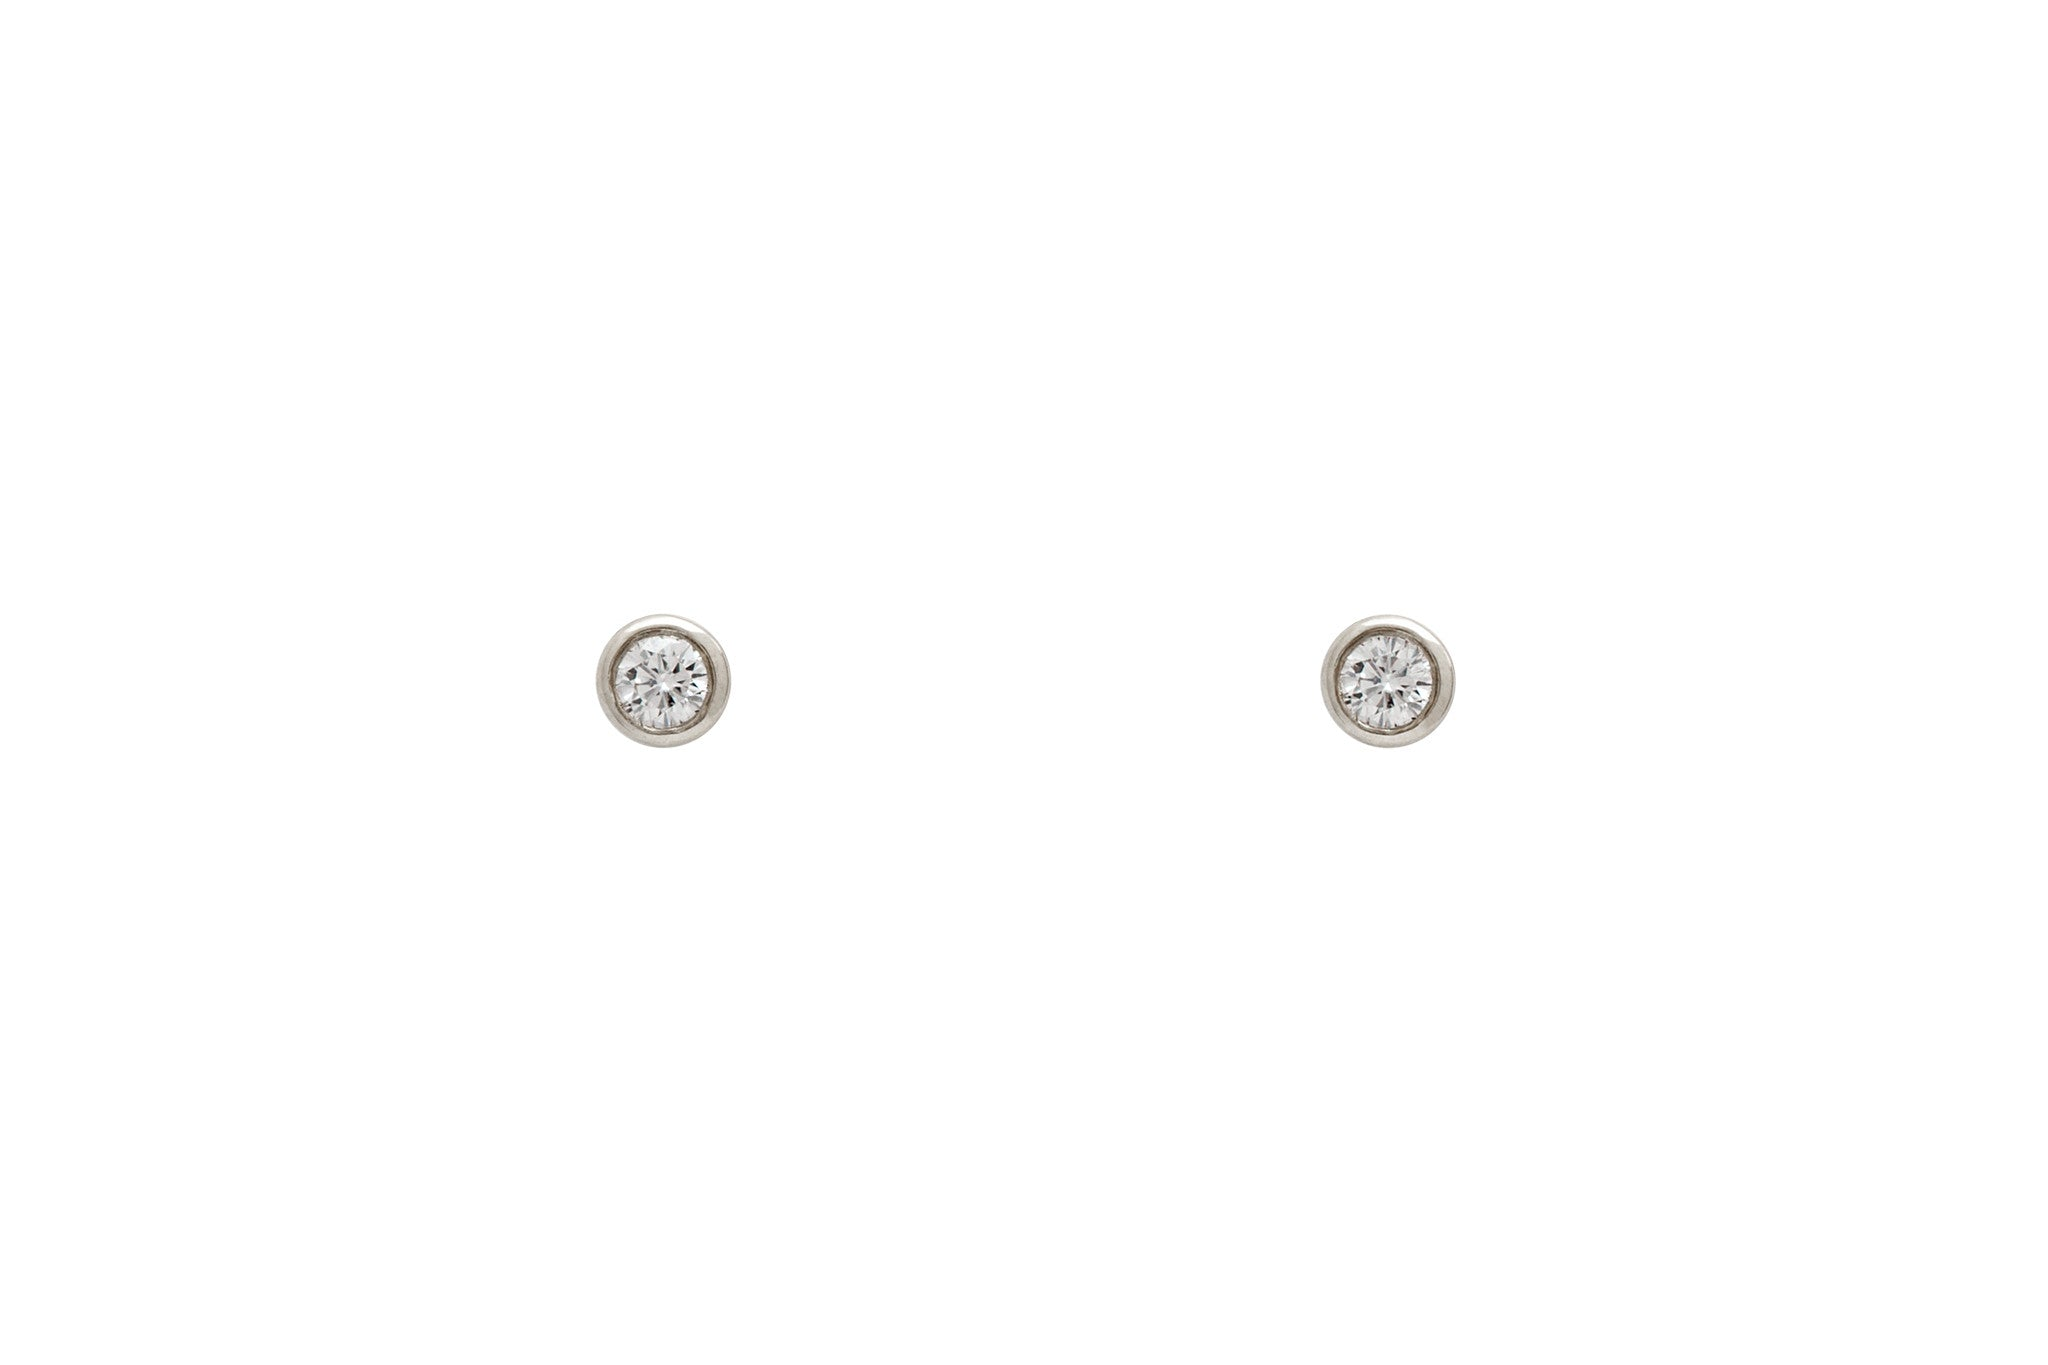 14k White Gold Genuine Diamond Bezel Set Stud Earrings